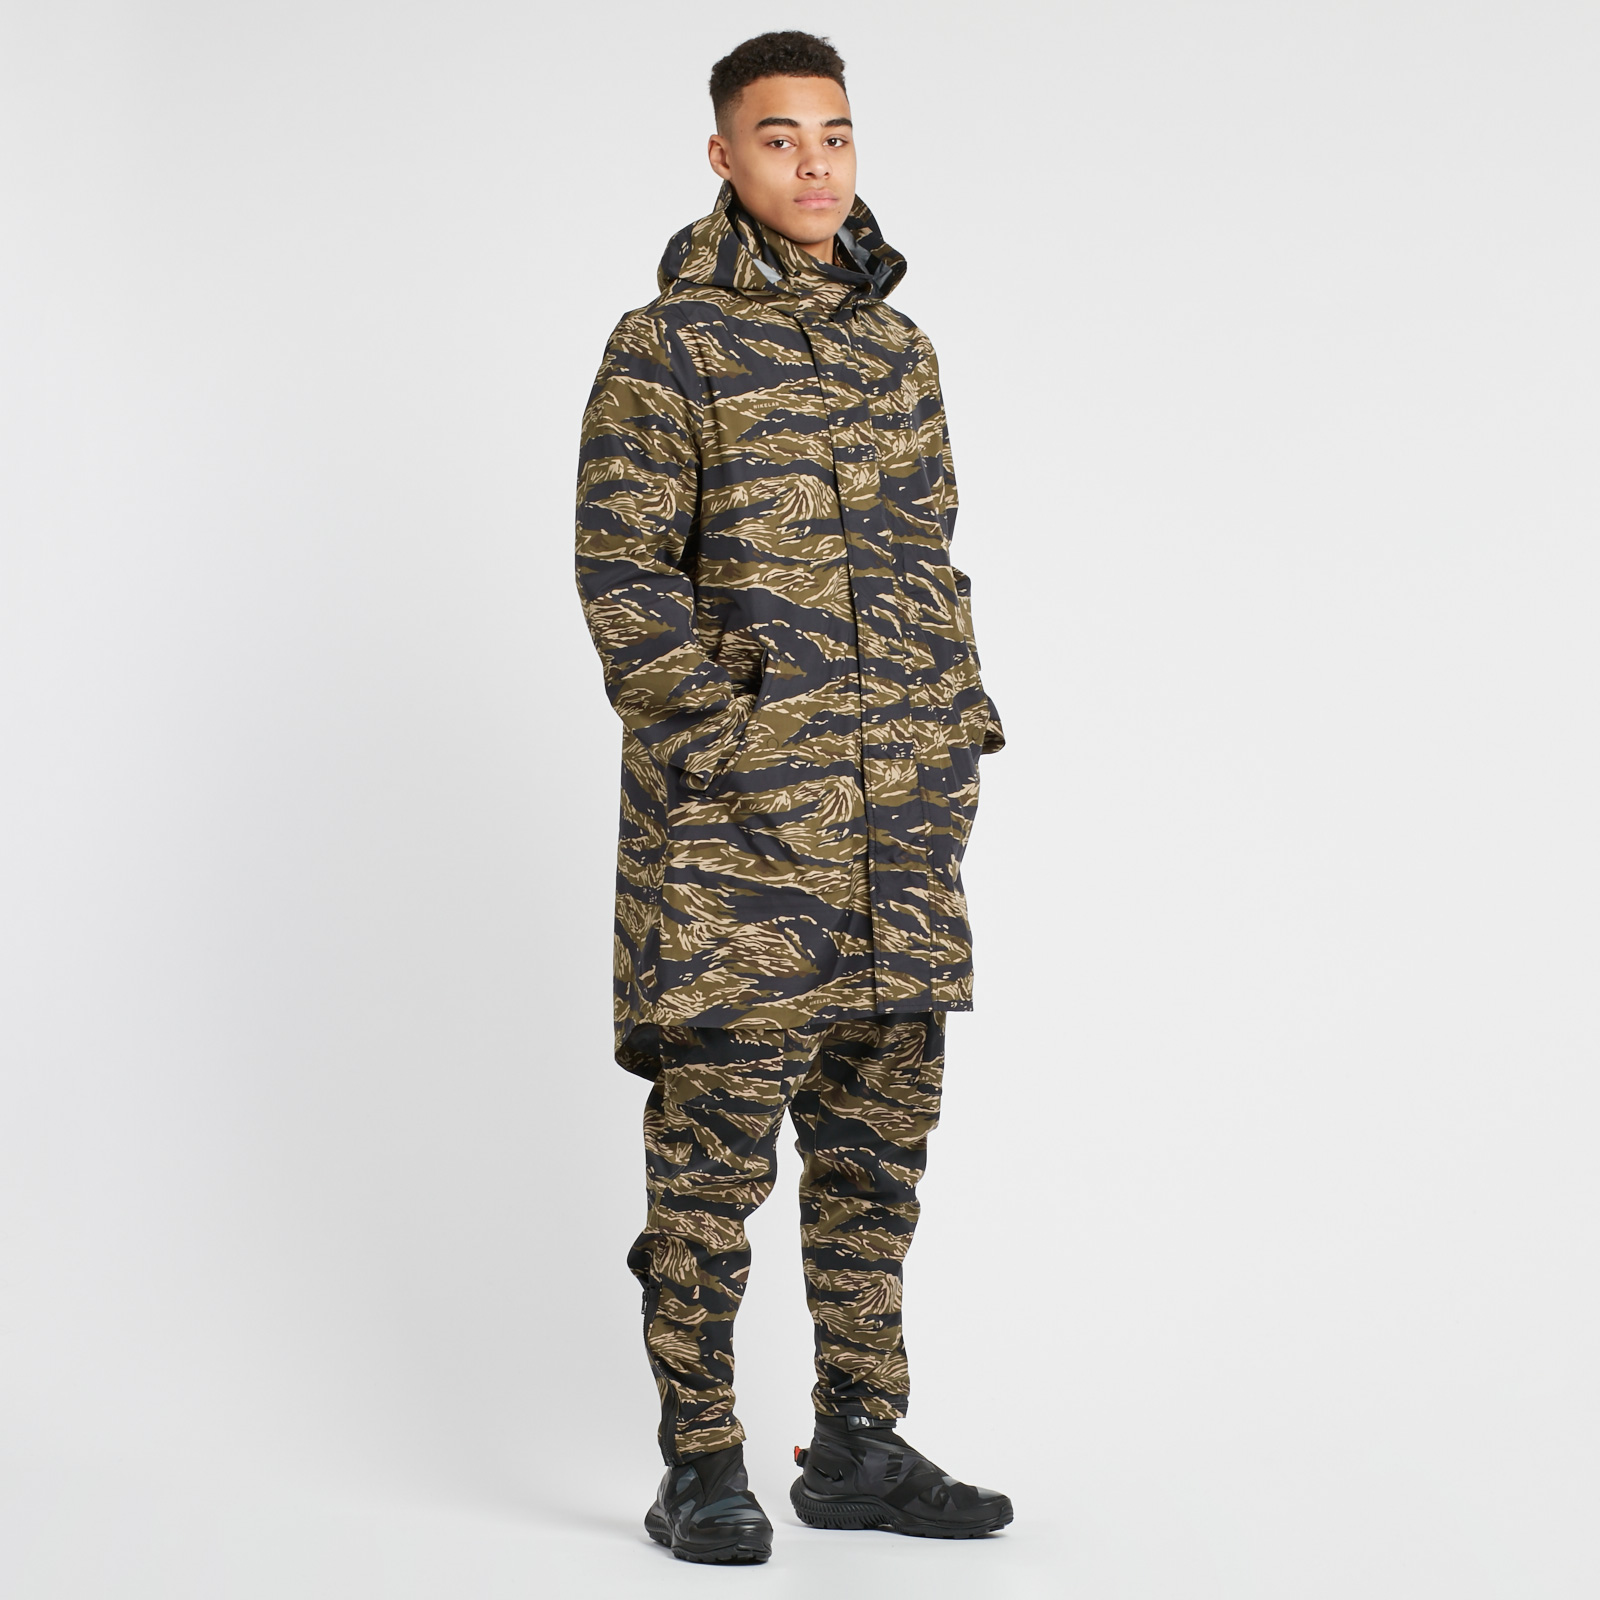 53b32a0983 The NikeLab Essentials Tiger Camo Parka Men's Jacket offers striking visual  style and protection thanks to a water-repellent 3-layer fabric with taped  seams ...